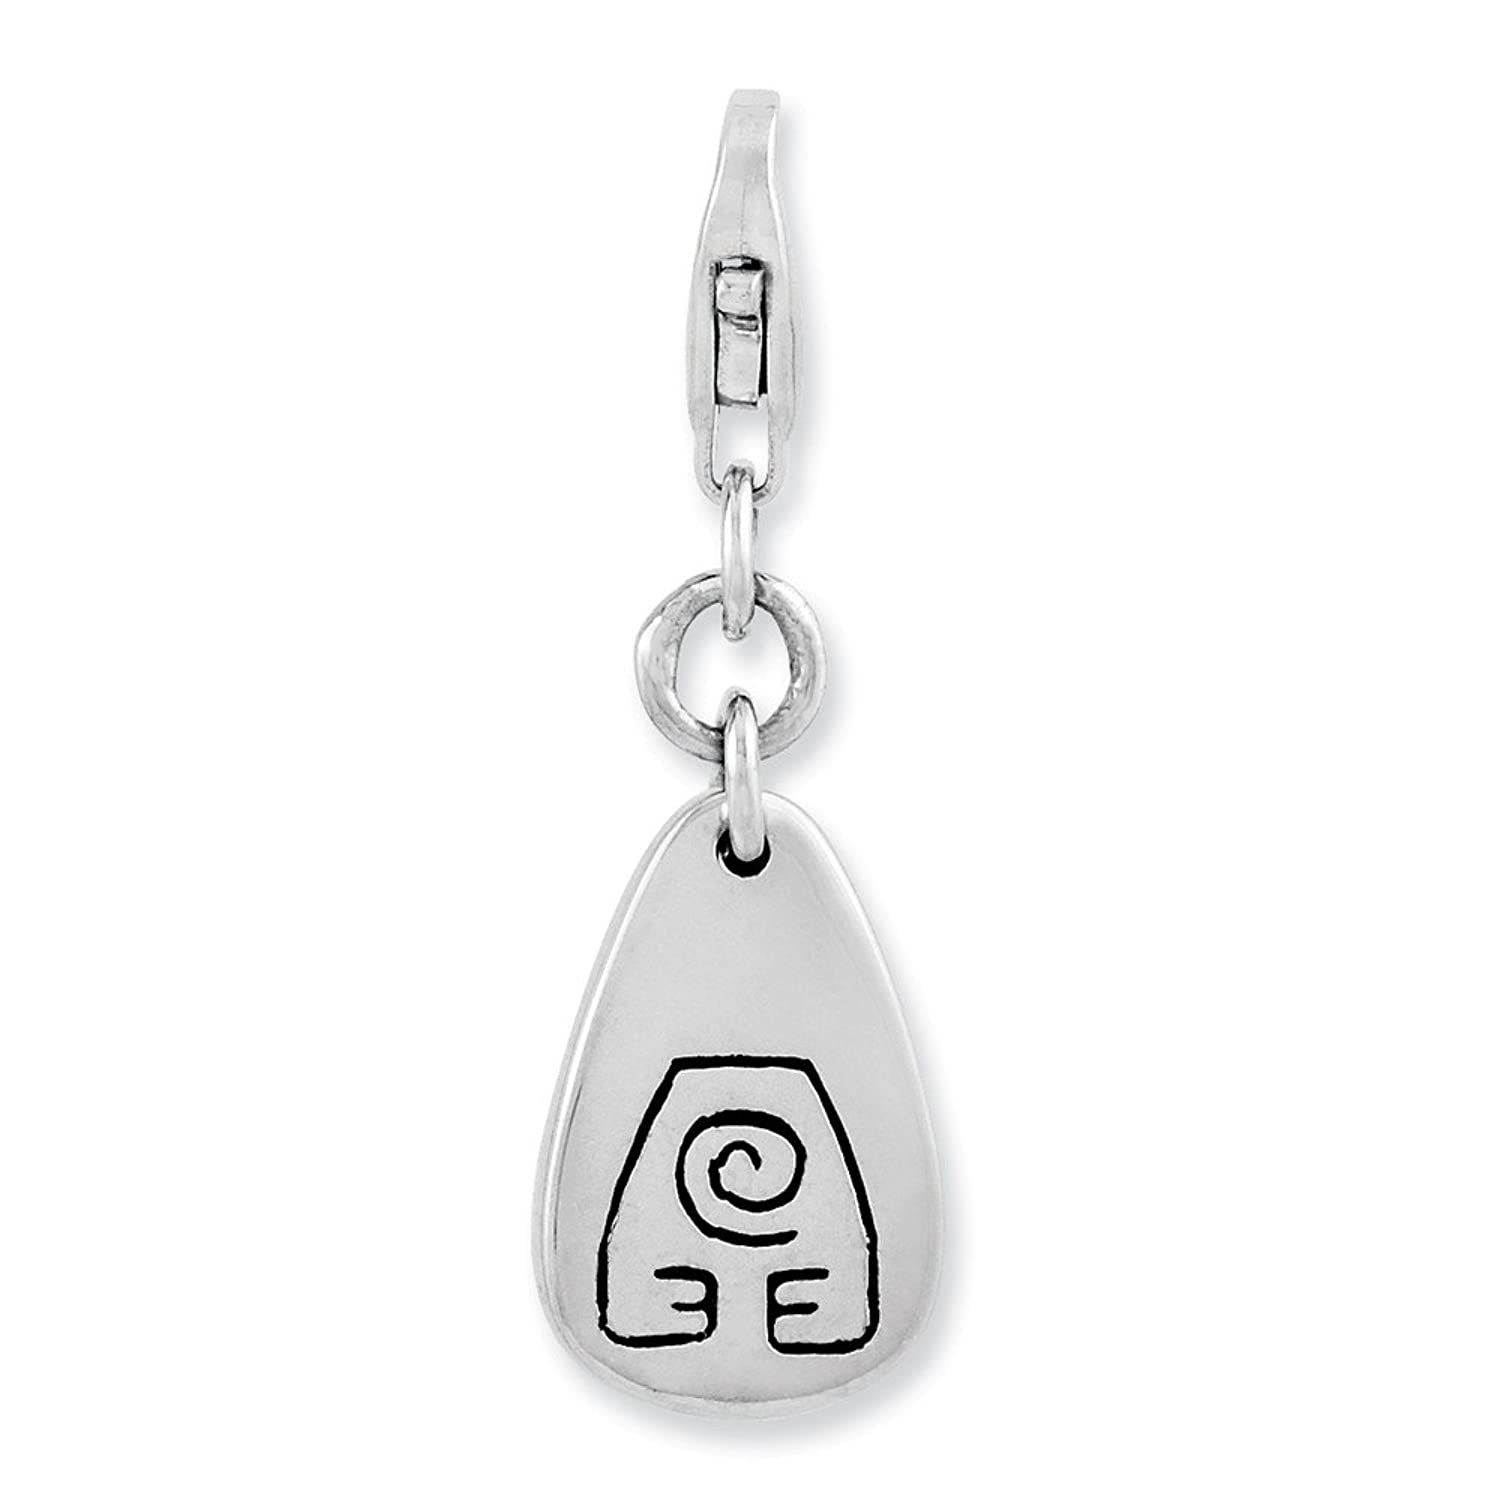 Genuine 925 Sterling Silver Flat Polished Clip On Heart Charm